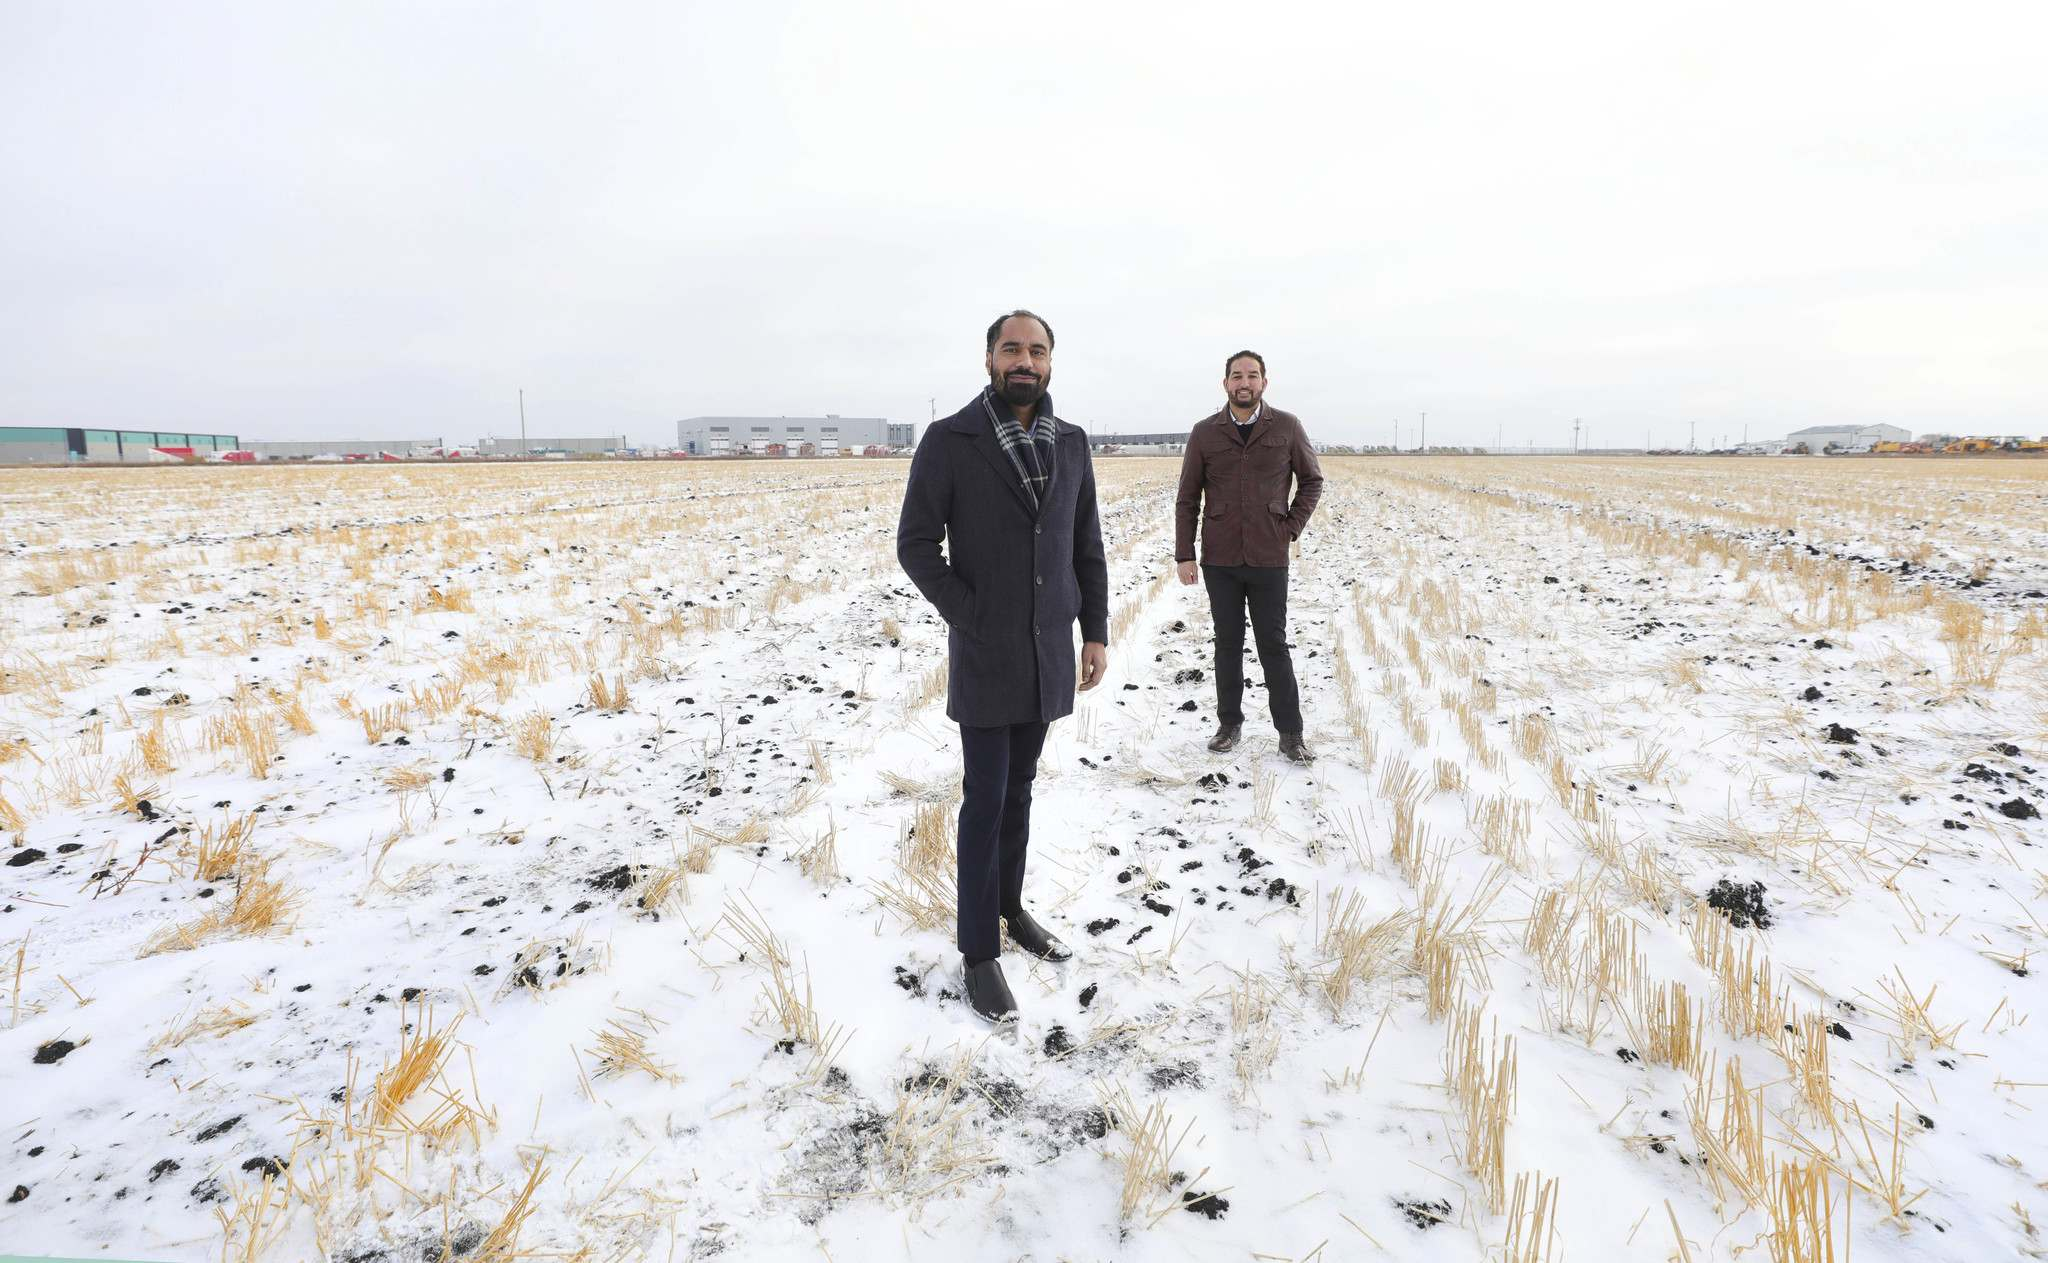 Whiteland Developers CEO Paul Jhand (front) and president Sam Sidhu. Whiteland is investing $65 million into the development of InksPort, a new 68-acre business park at CentrePort. (Ruth Bonneville / Winnipeg Free Press)</p></p>